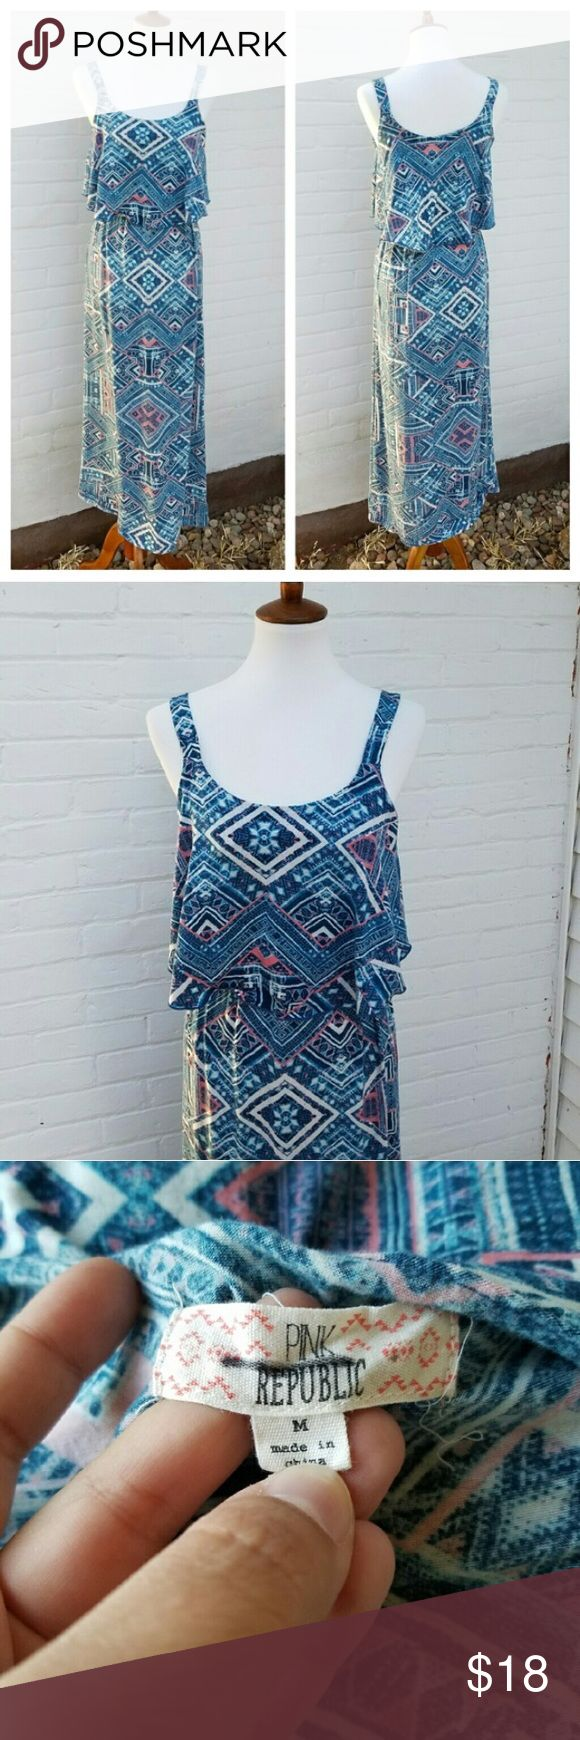 Pink Republic Aztec Maxi Dress Gently used . Stretchy . Stretchy waist band . Non-adjustable straps .  #111004 Pink Republic Dresses Maxi